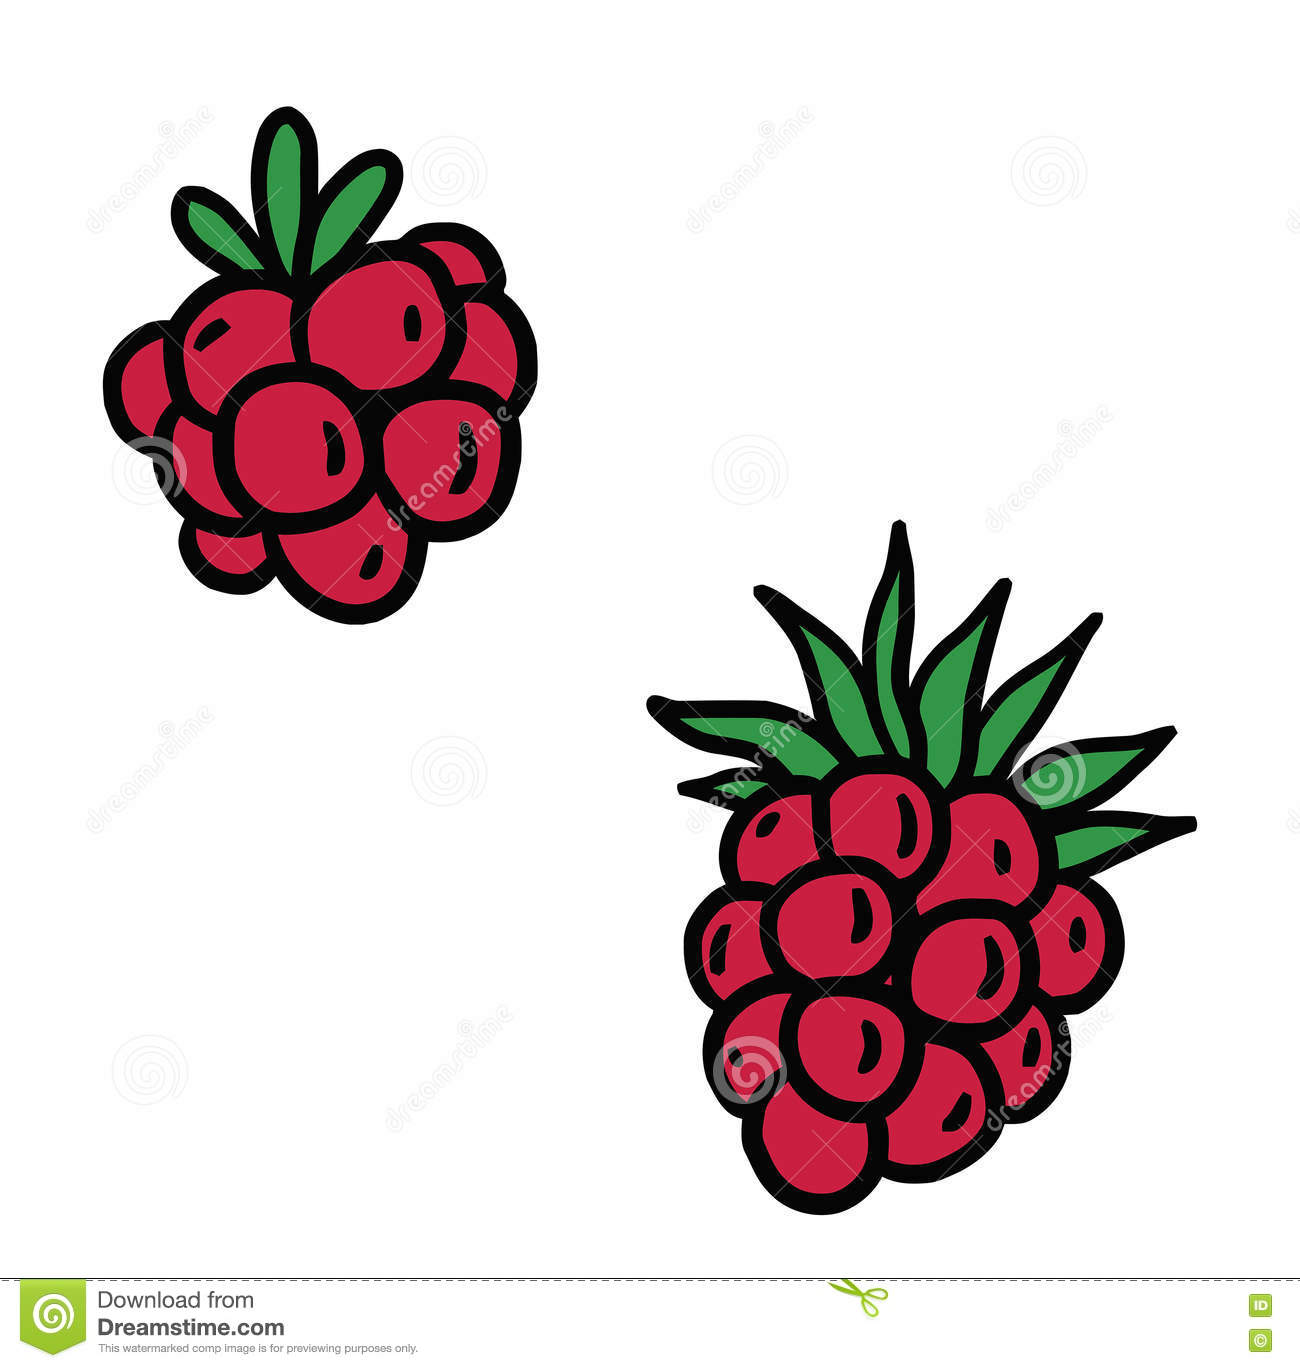 Reb Berries Stock Illustrations u2013 2 Reb Berries Stock Illustrations,  Vectors u0026 Clipart - Dreamstime